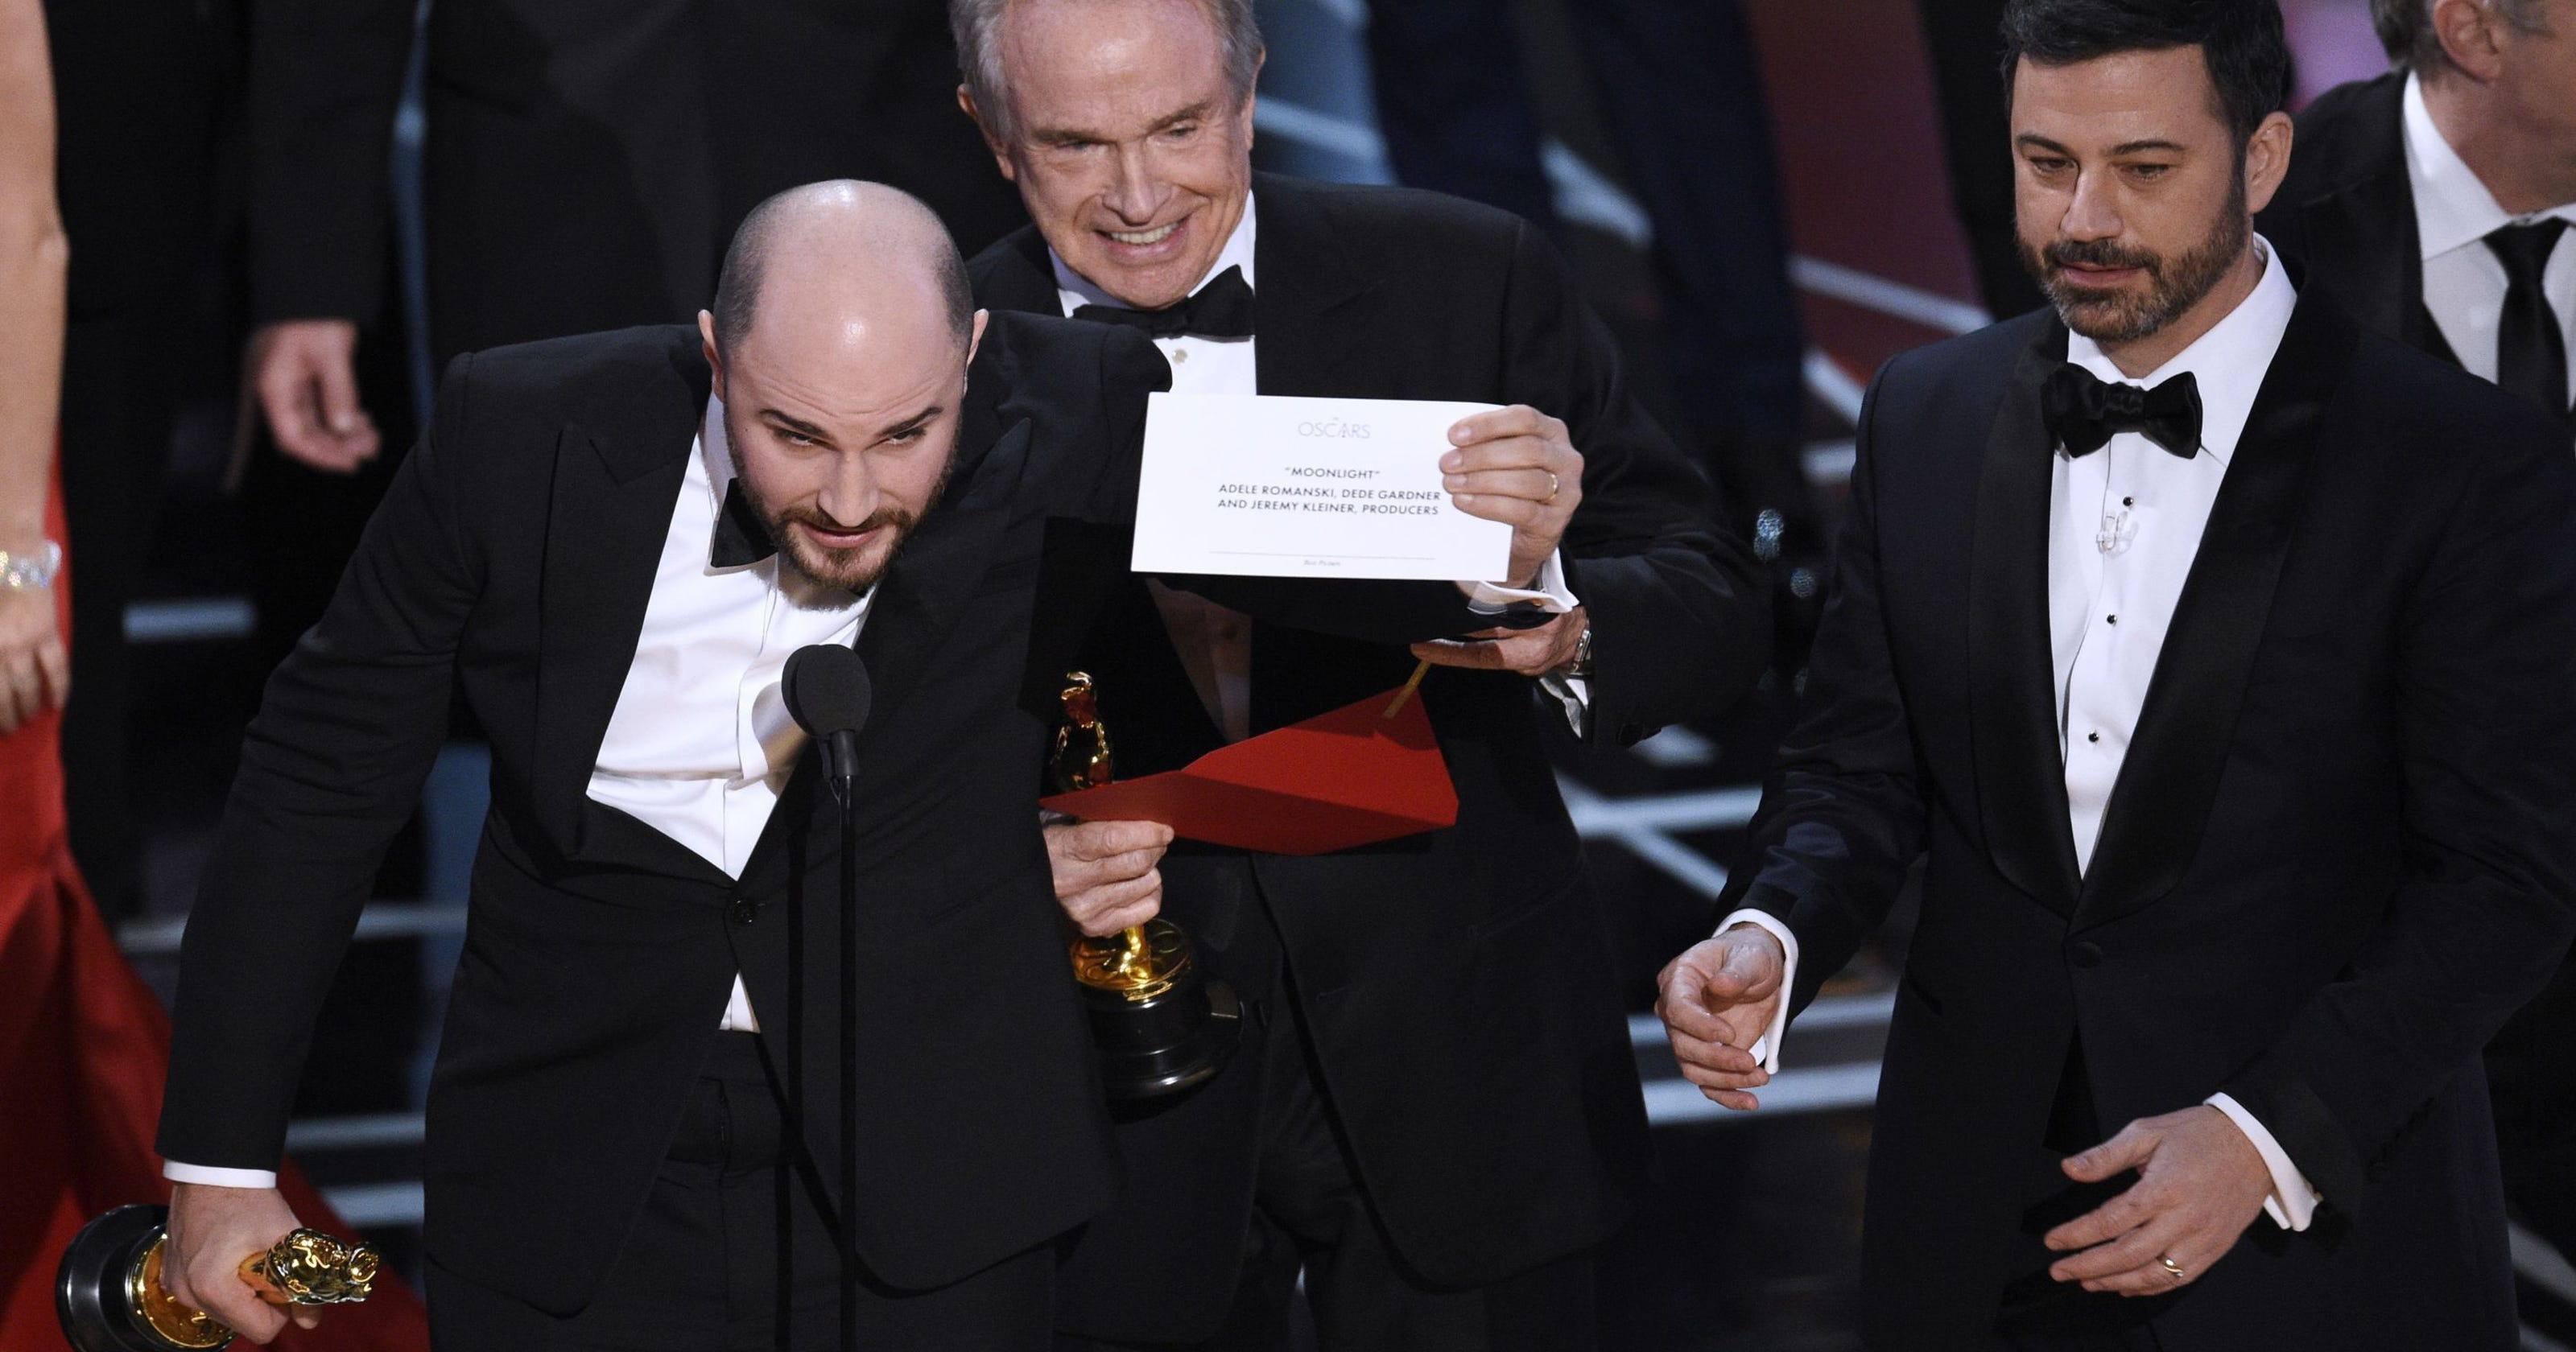 88885d03e917e 25 of the most unforgettable moments in Oscar history